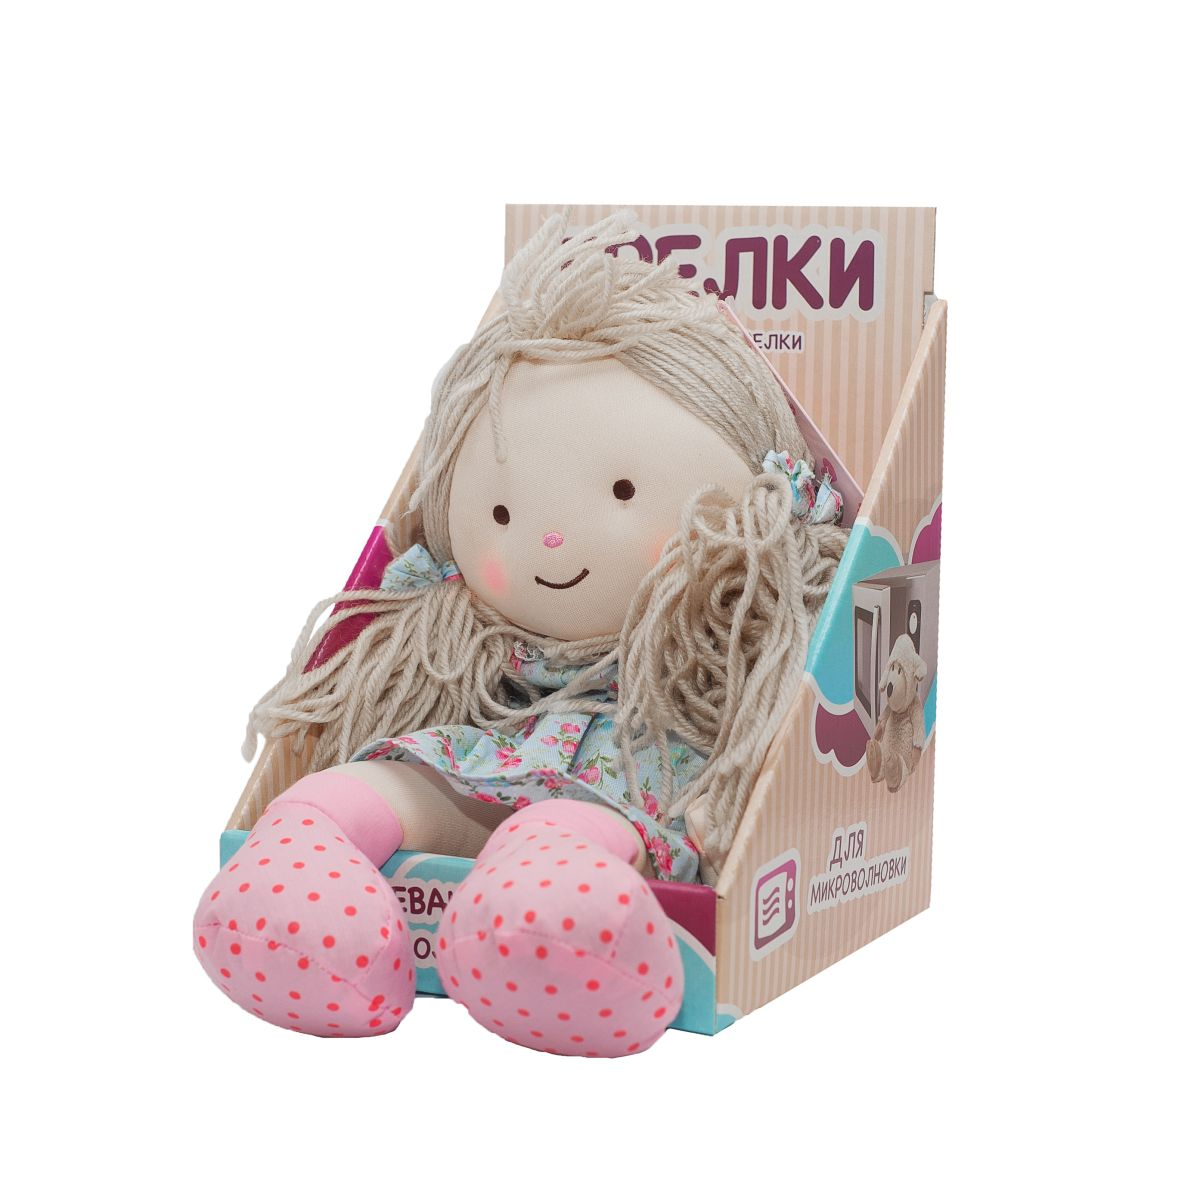 Пинкл (Pinkl) | Кукла-грелка Оливия | Olivia Warmheart Heatable Rag Doll